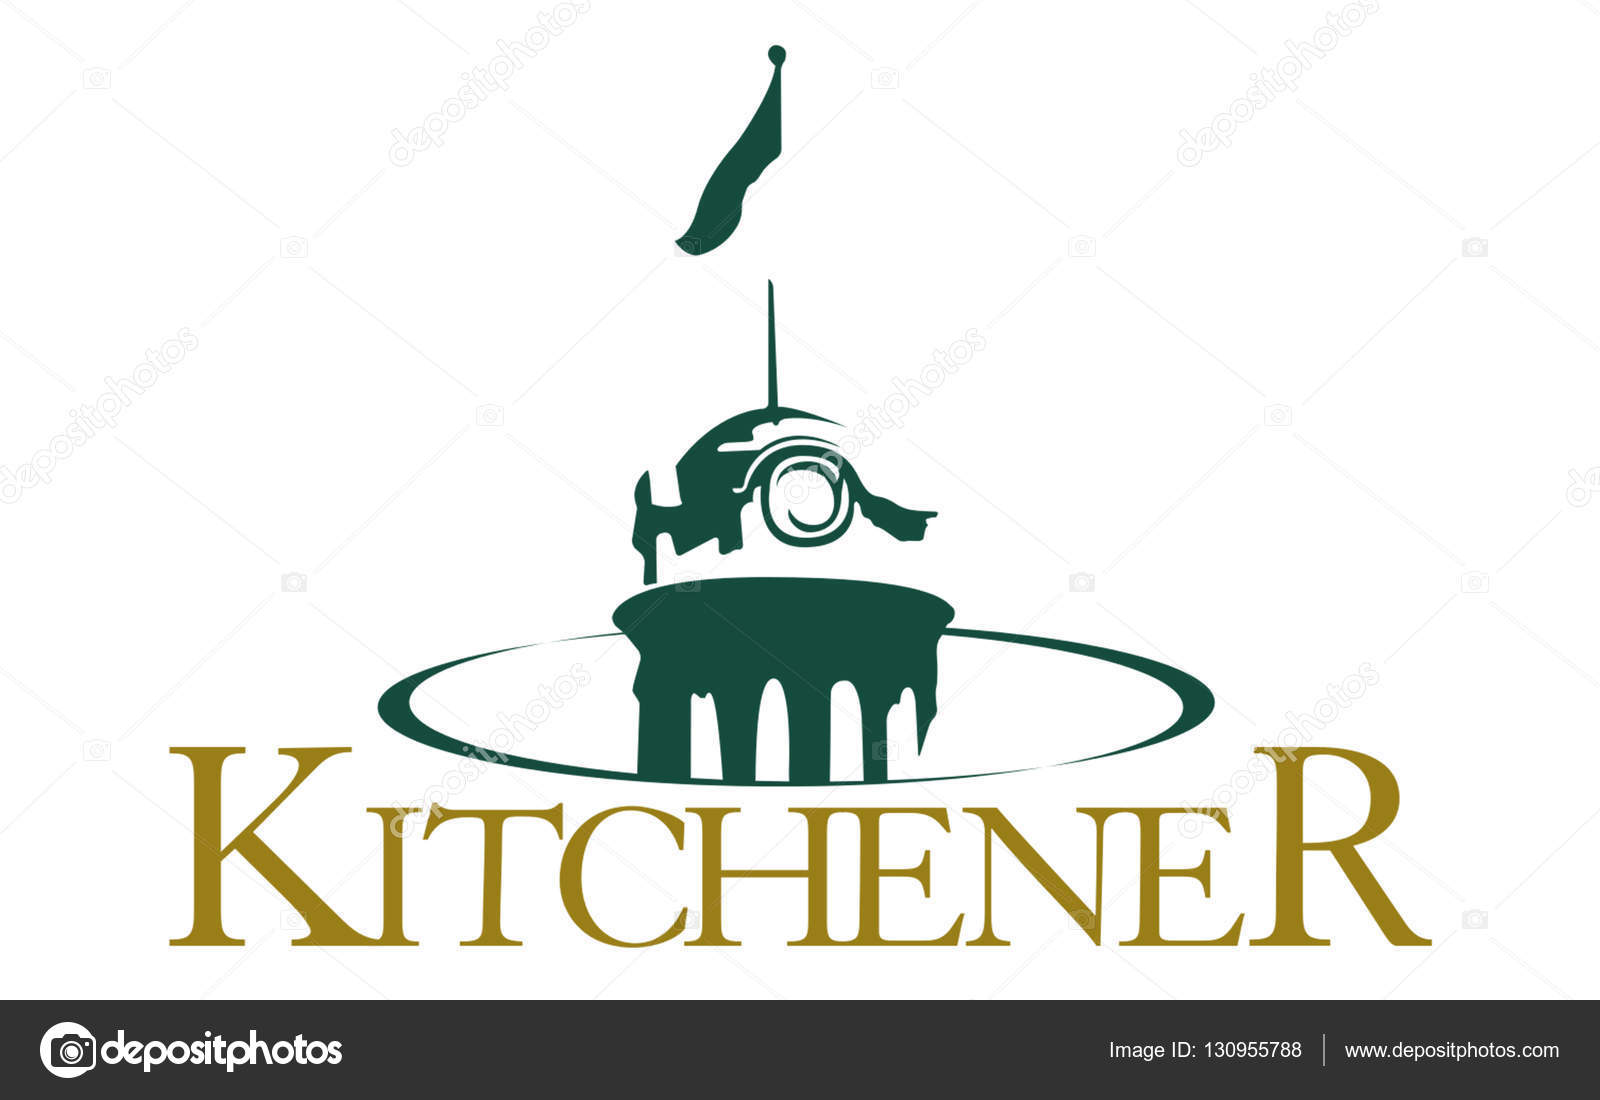 Flag of Kitchener Ontario, Canada — Stock Photo © zloyel #130955788